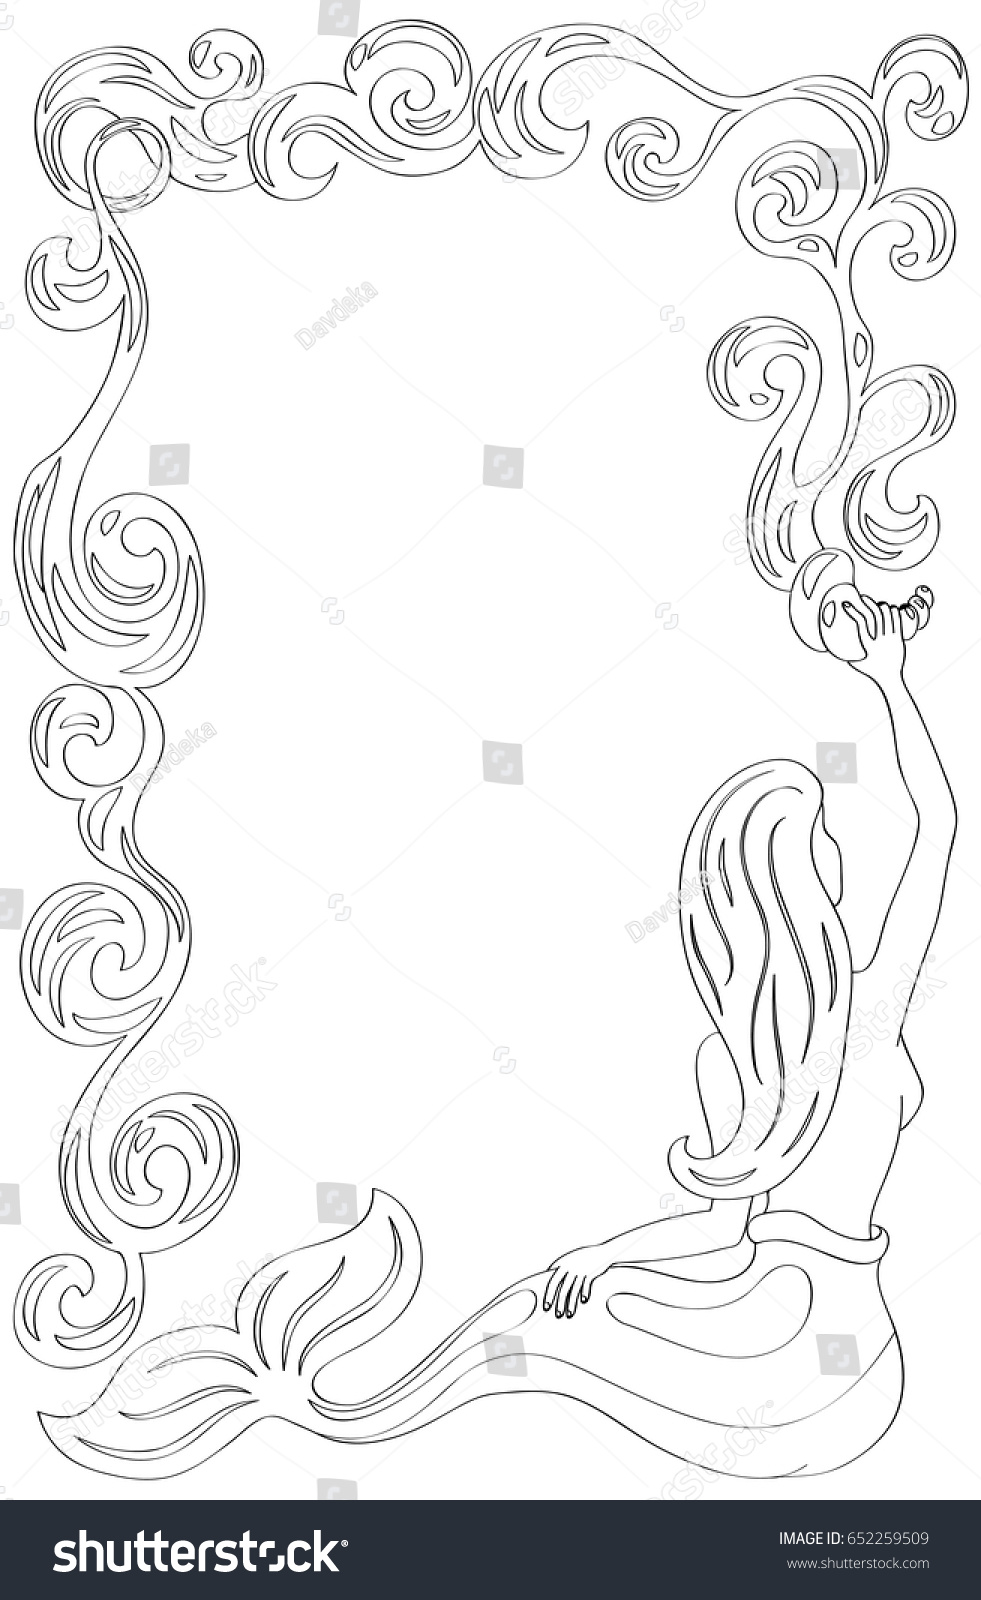 Mermaid Frame Water Flow Mermaid Coloring Stock Vector 652259509 ...